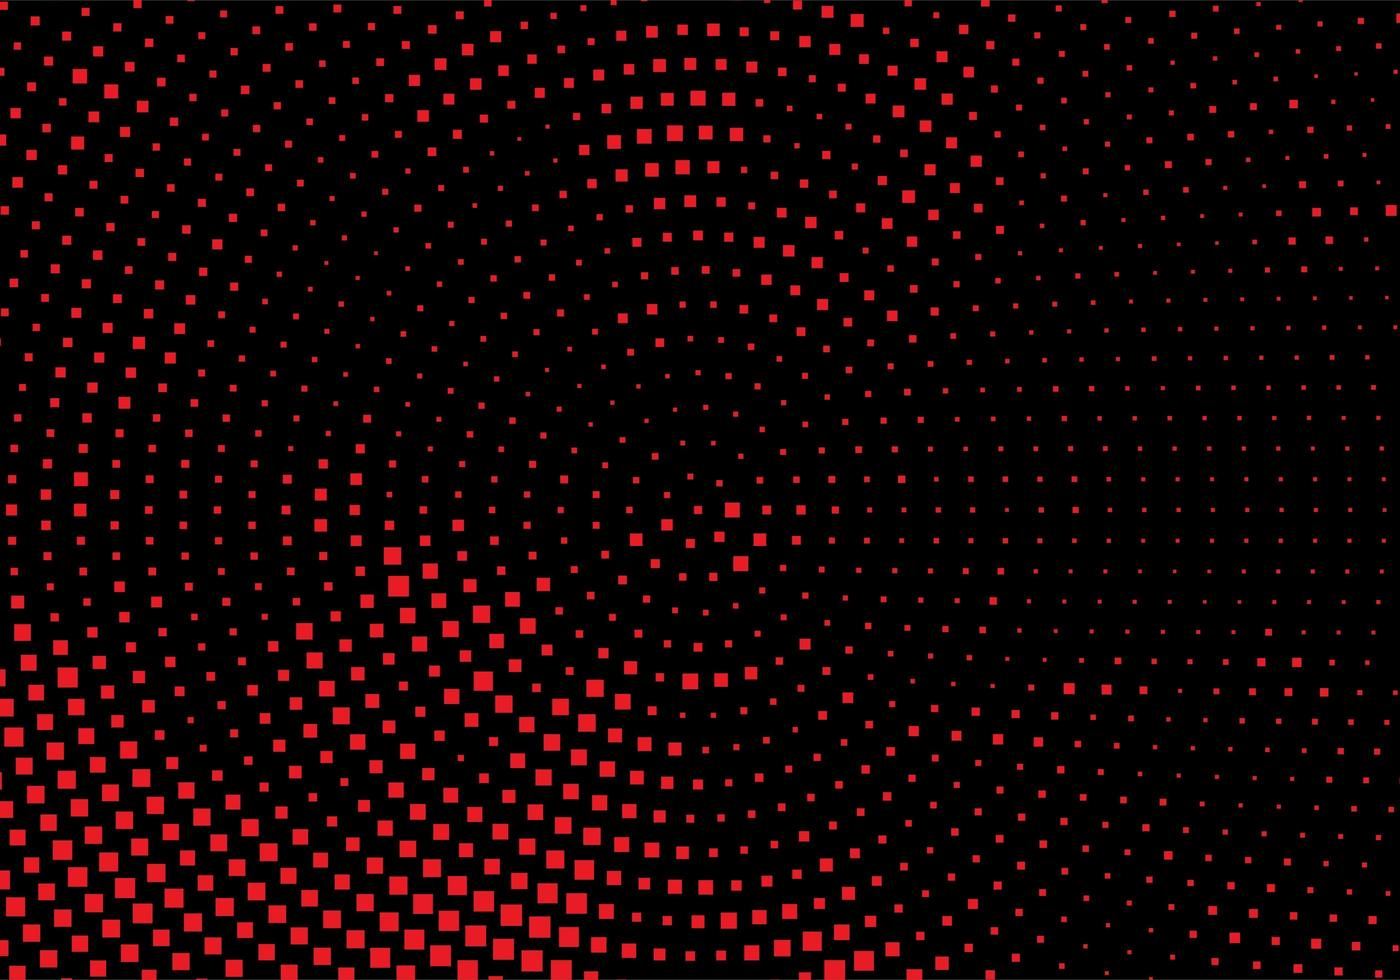 Modern red and black circular dotted background vector